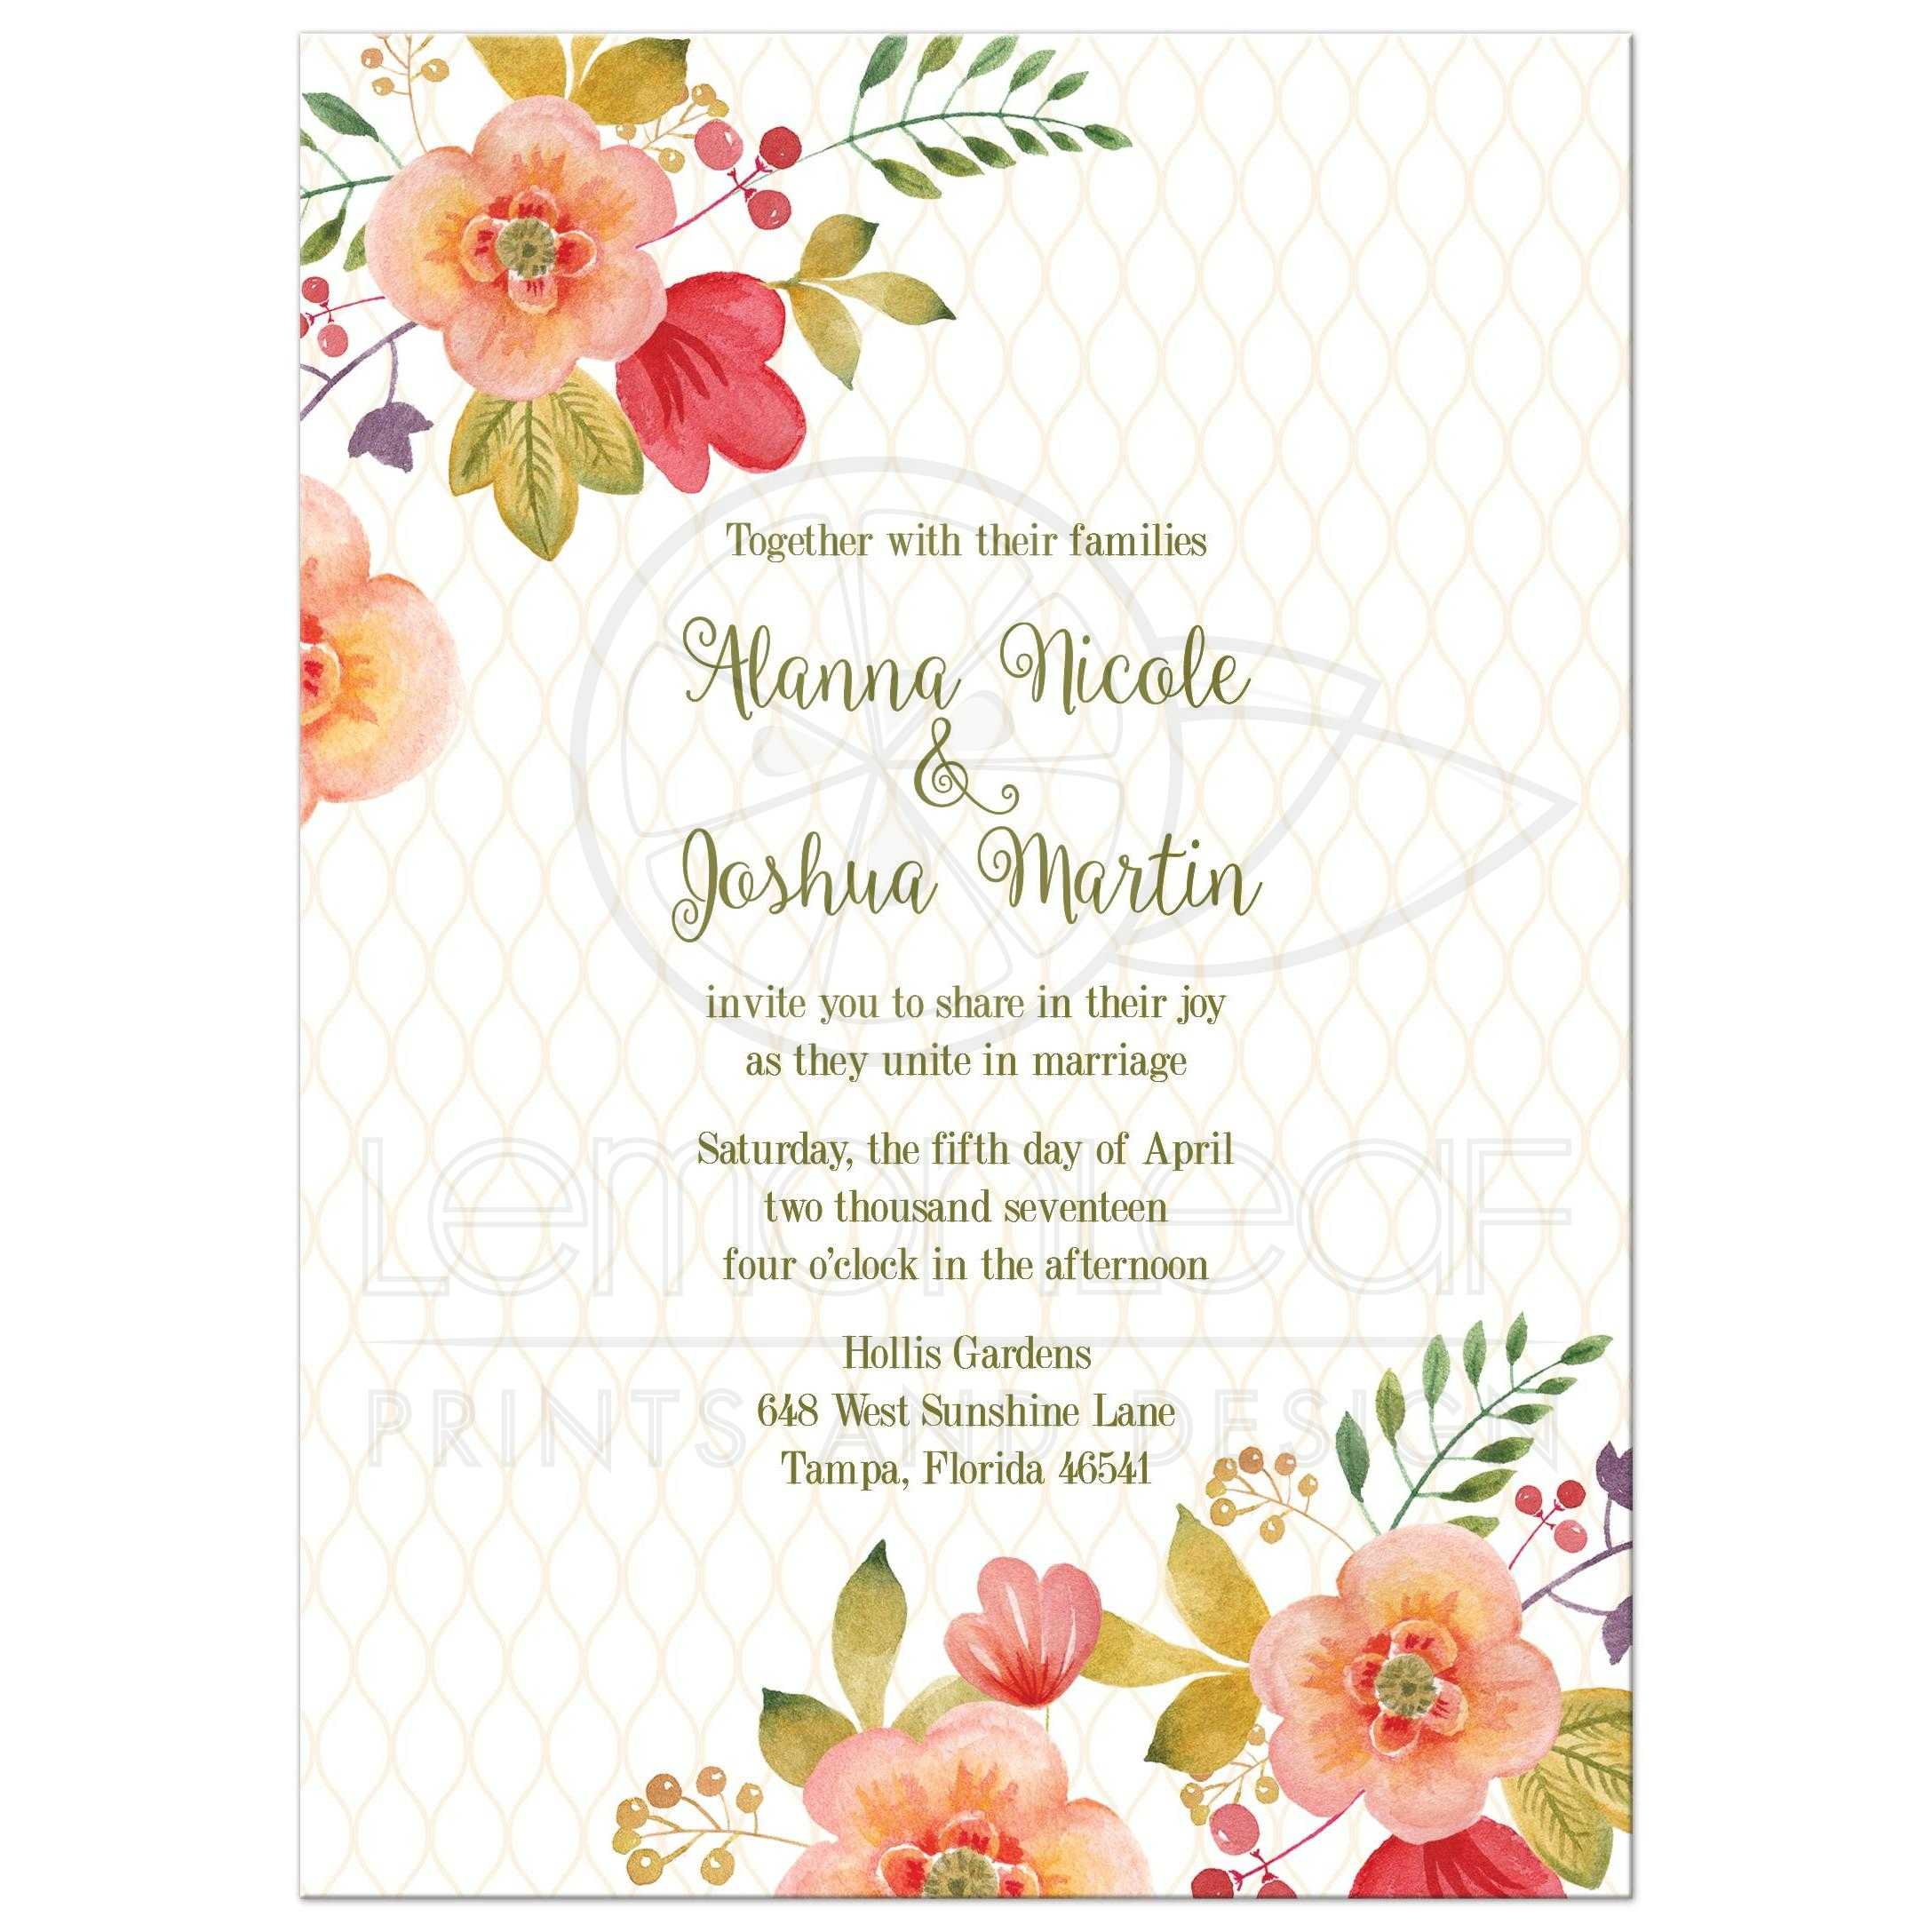 Quinceañera Invitation as beautiful invitations layout